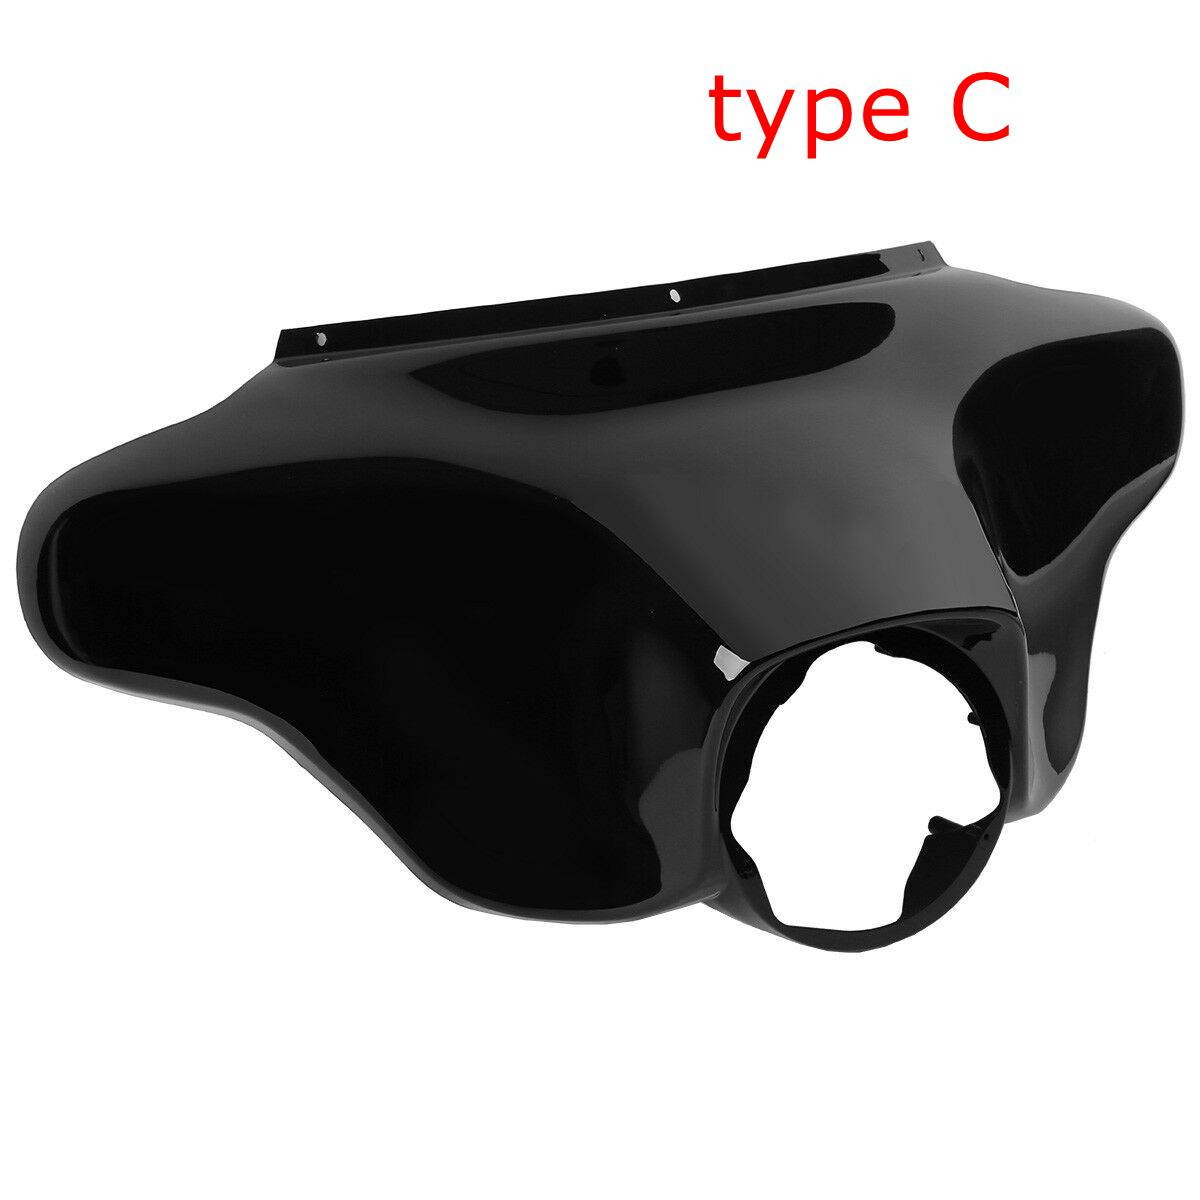 TCMT Outer Batwing Fairing 8 Smoke Windshield Windshield Fit For Harley Touring Street Glide 96-13